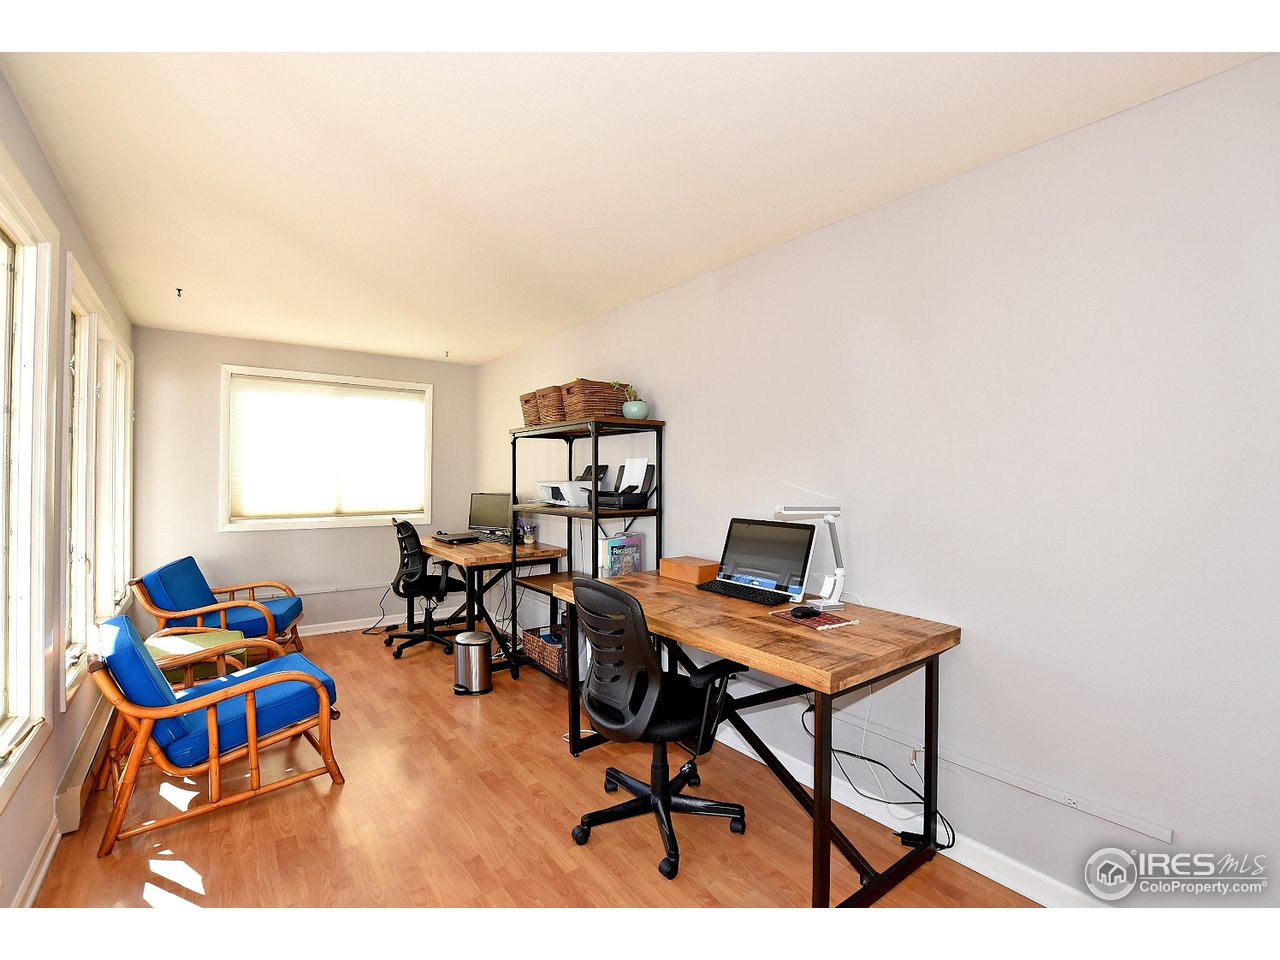 Office/study/workout room